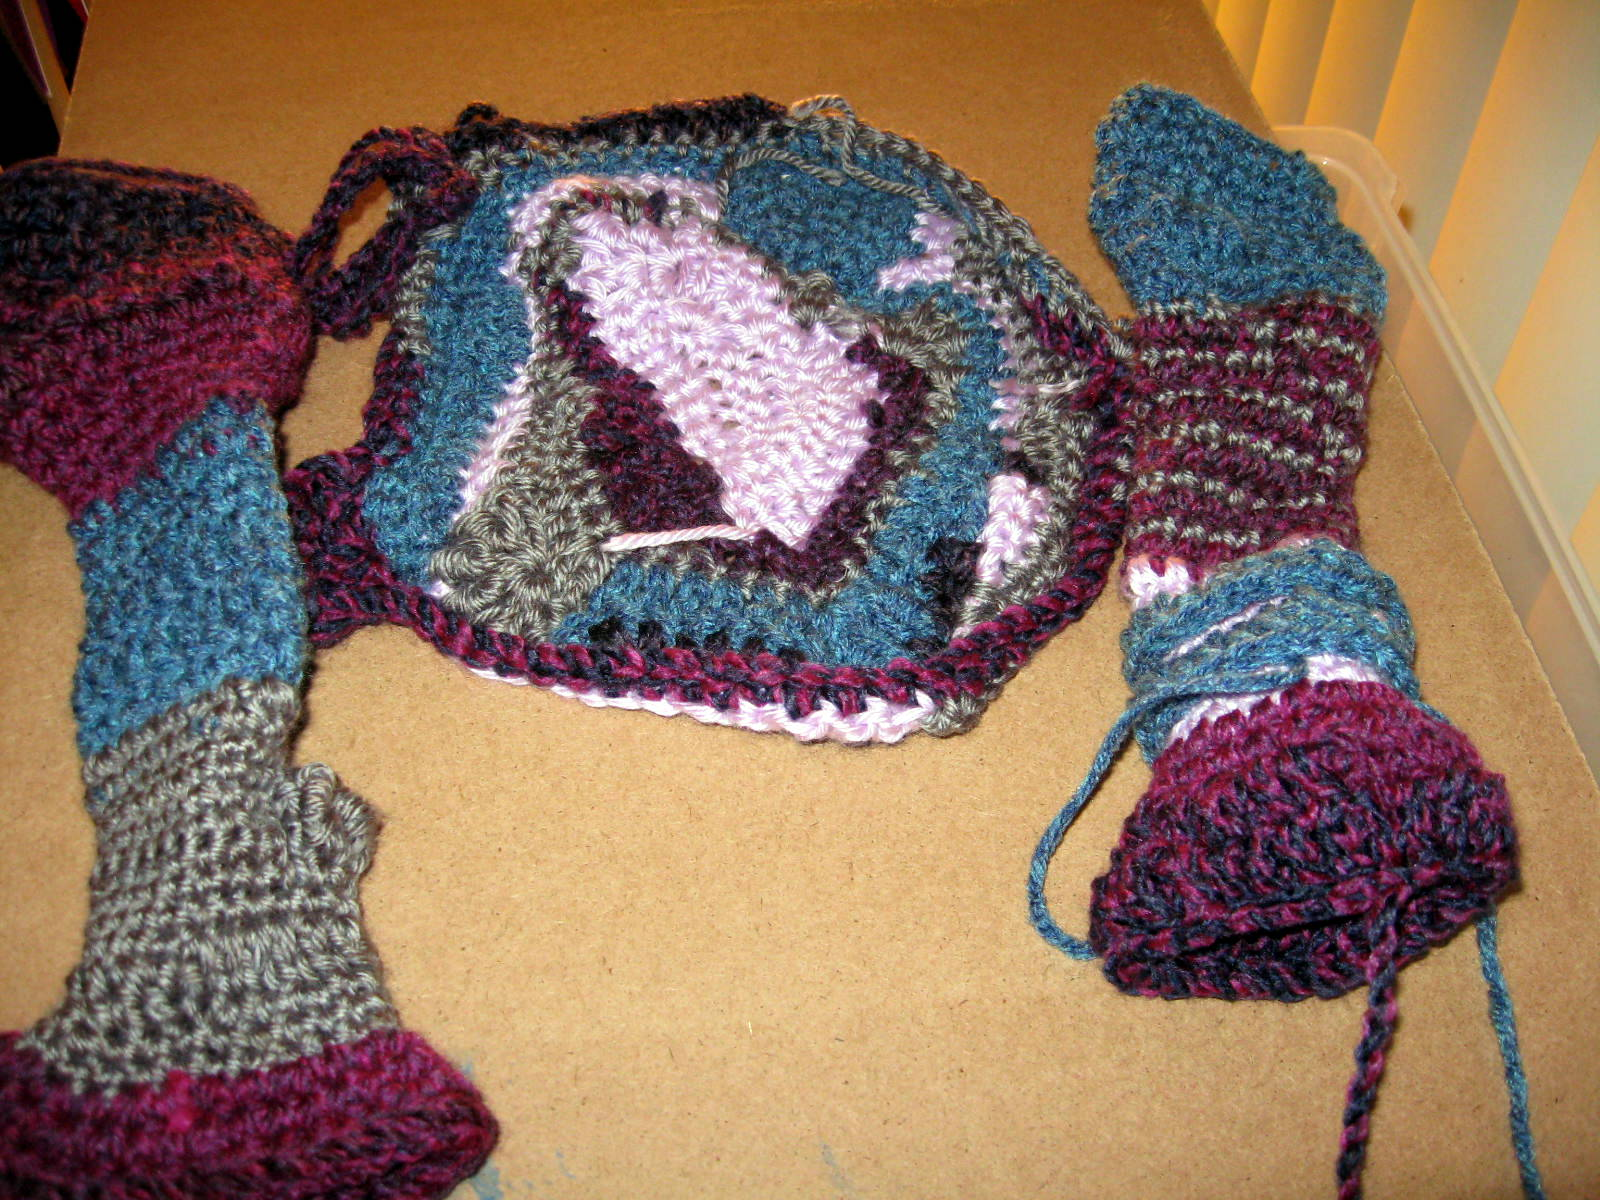 Jigsaw Blanket Knitting Pattern : Wild Jigsaw Knit Crochet